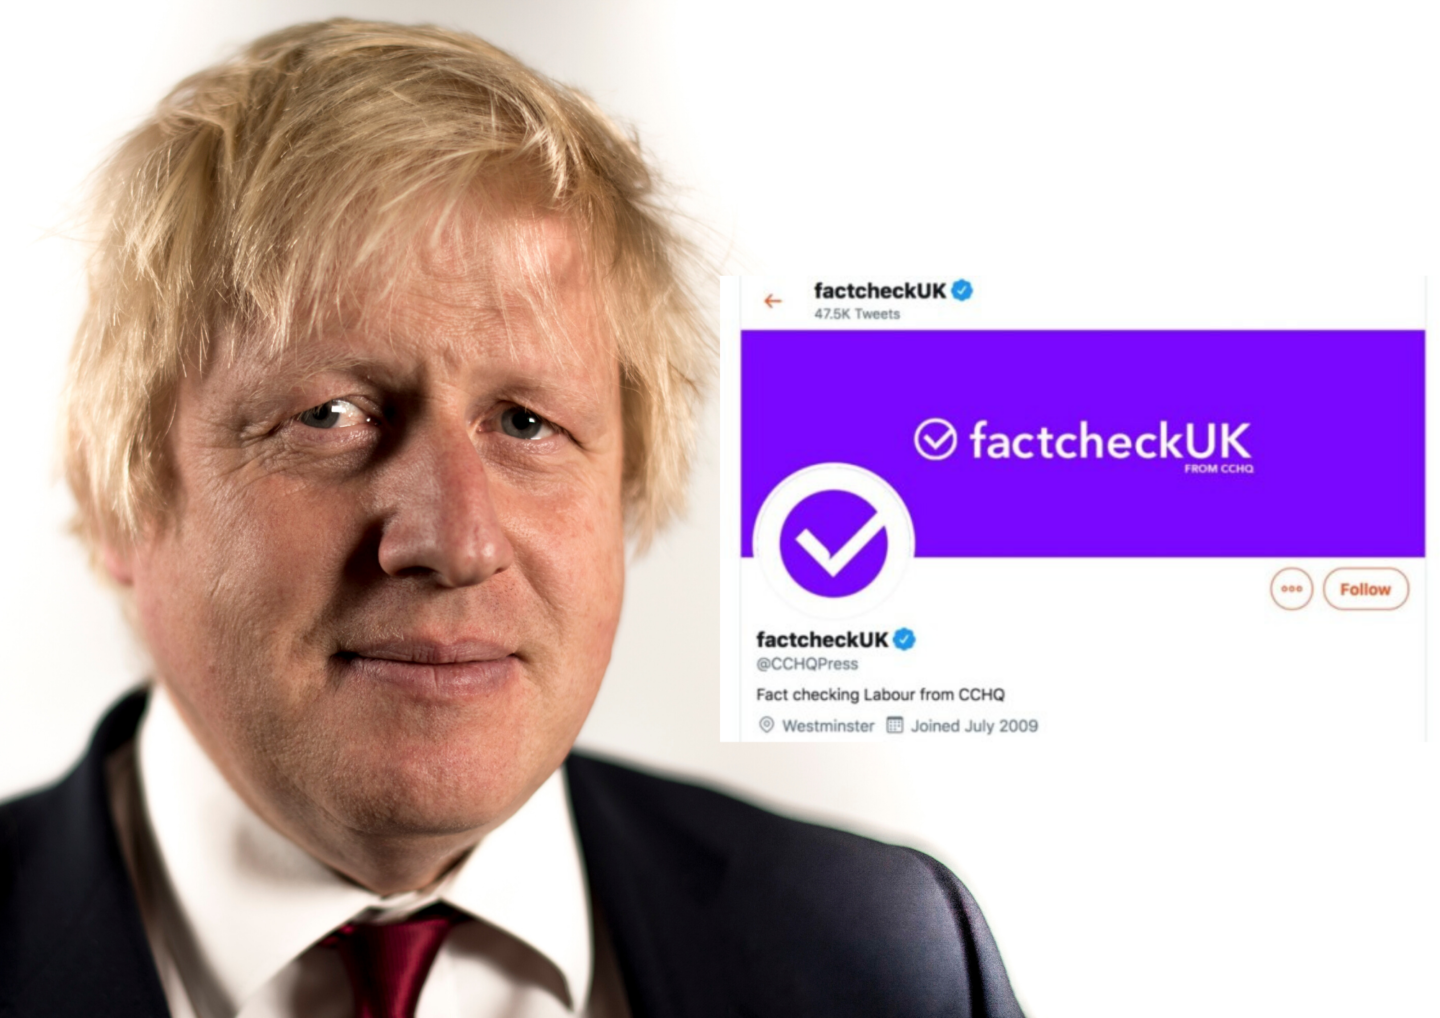 Fake Factcheck and Boris Johnson